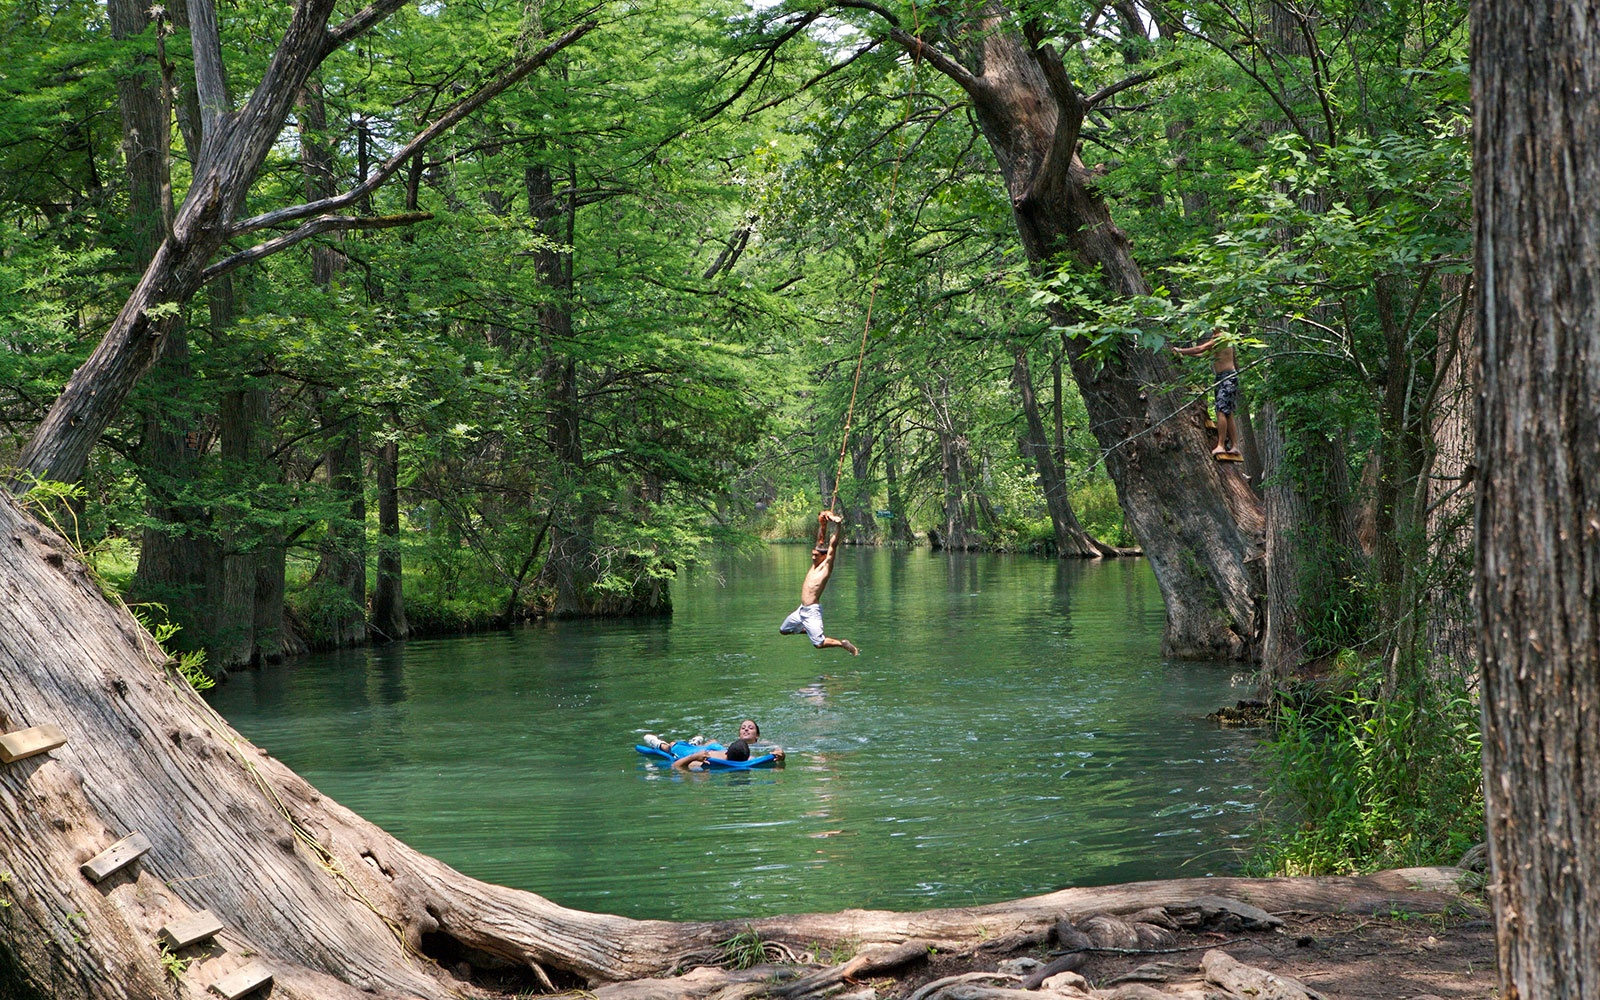 swimming at The Blue Hole in Wimberly, TX